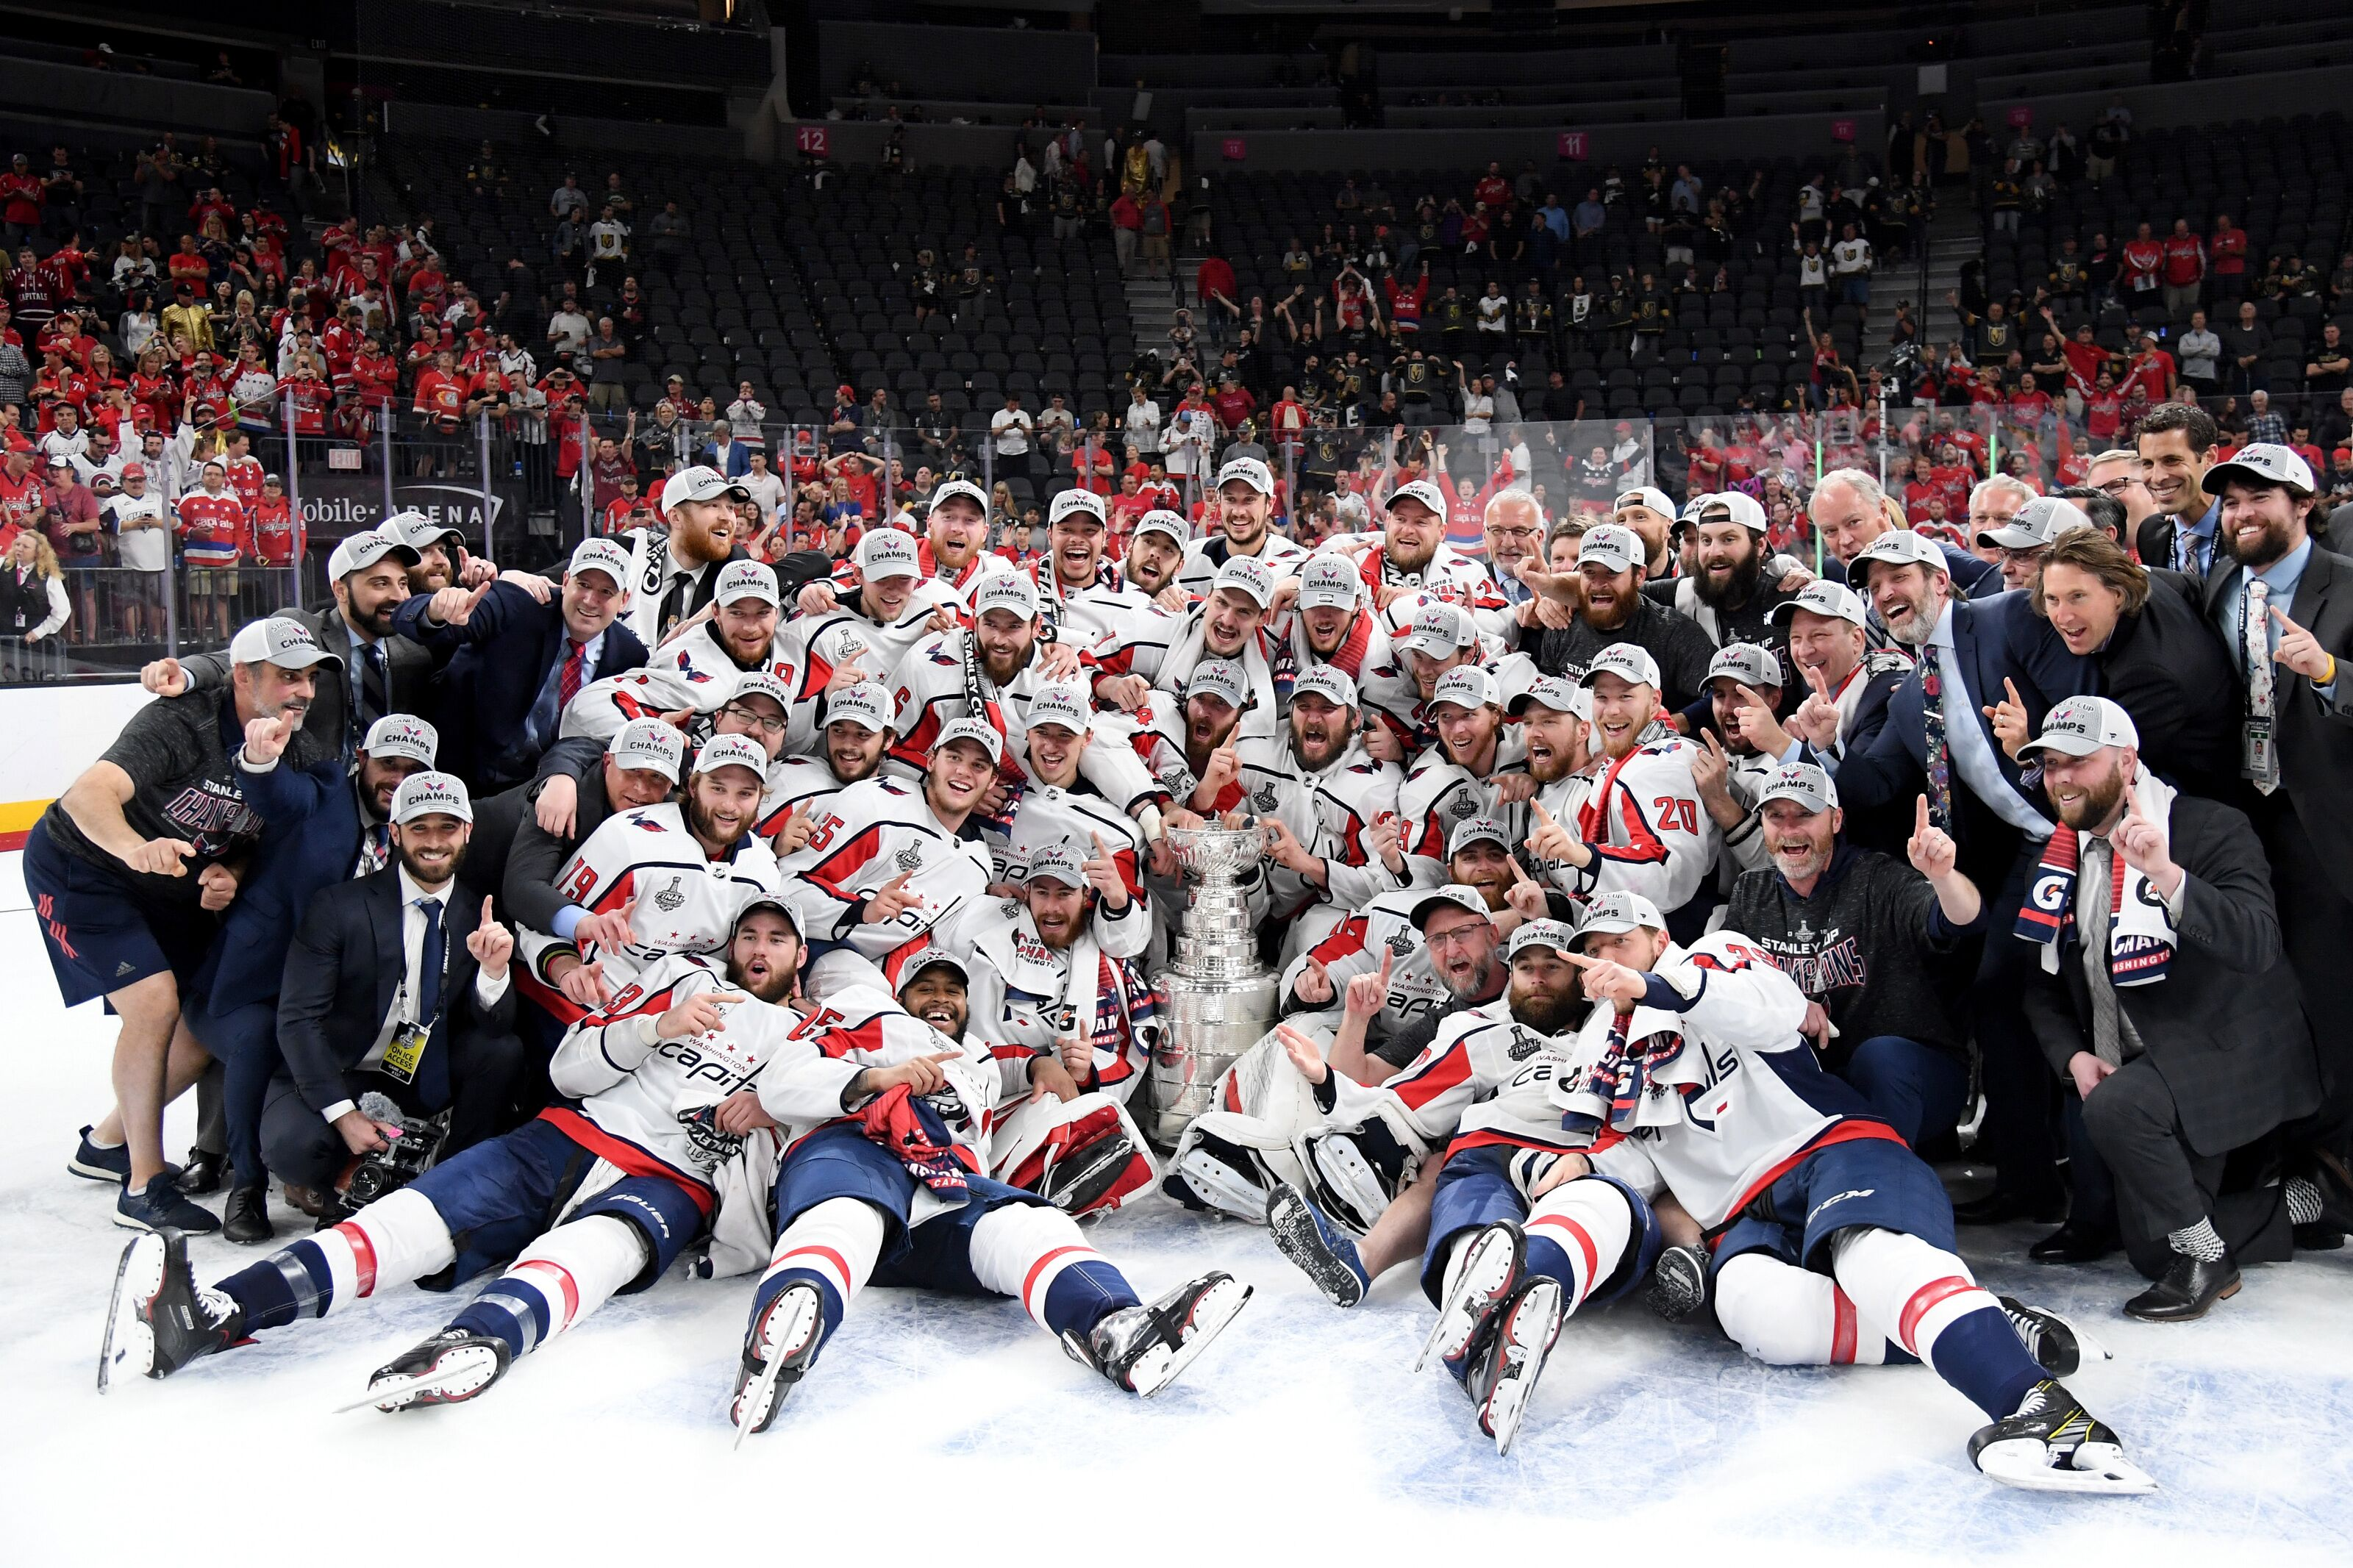 883cfd8ef55 Washington Capitals 2018 championship parade  Date